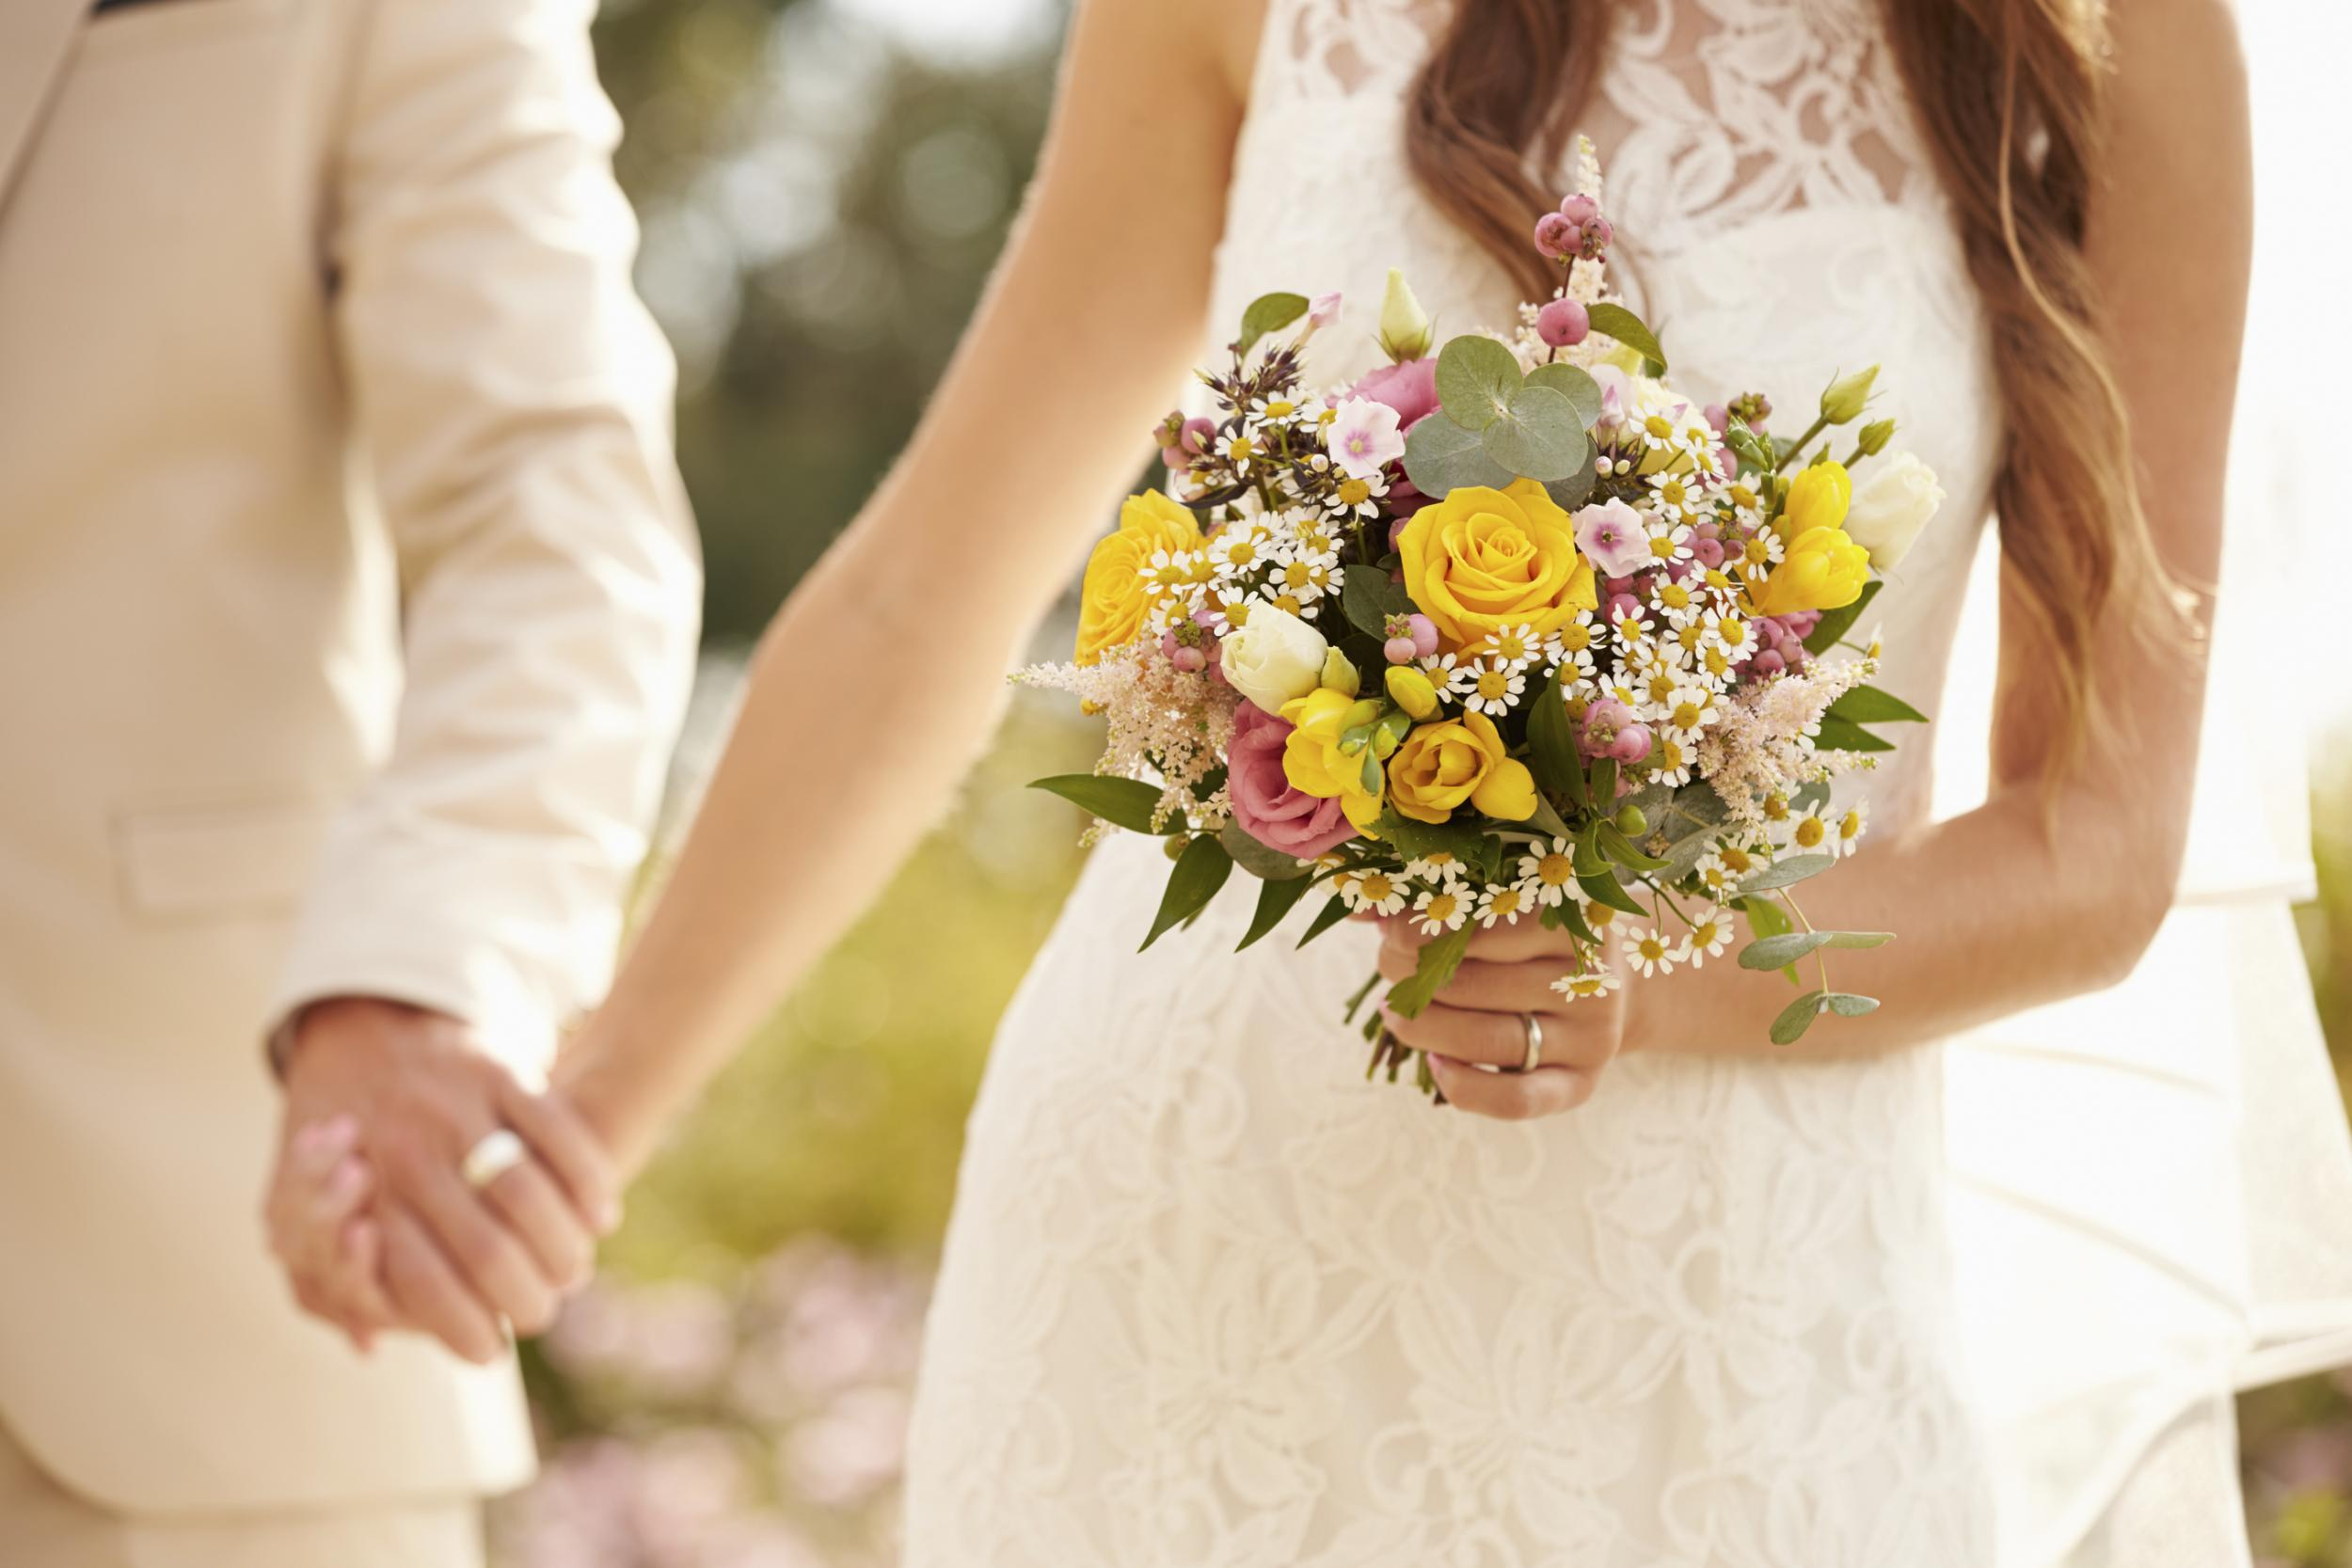 photos/married-couple-bouquet.jpg